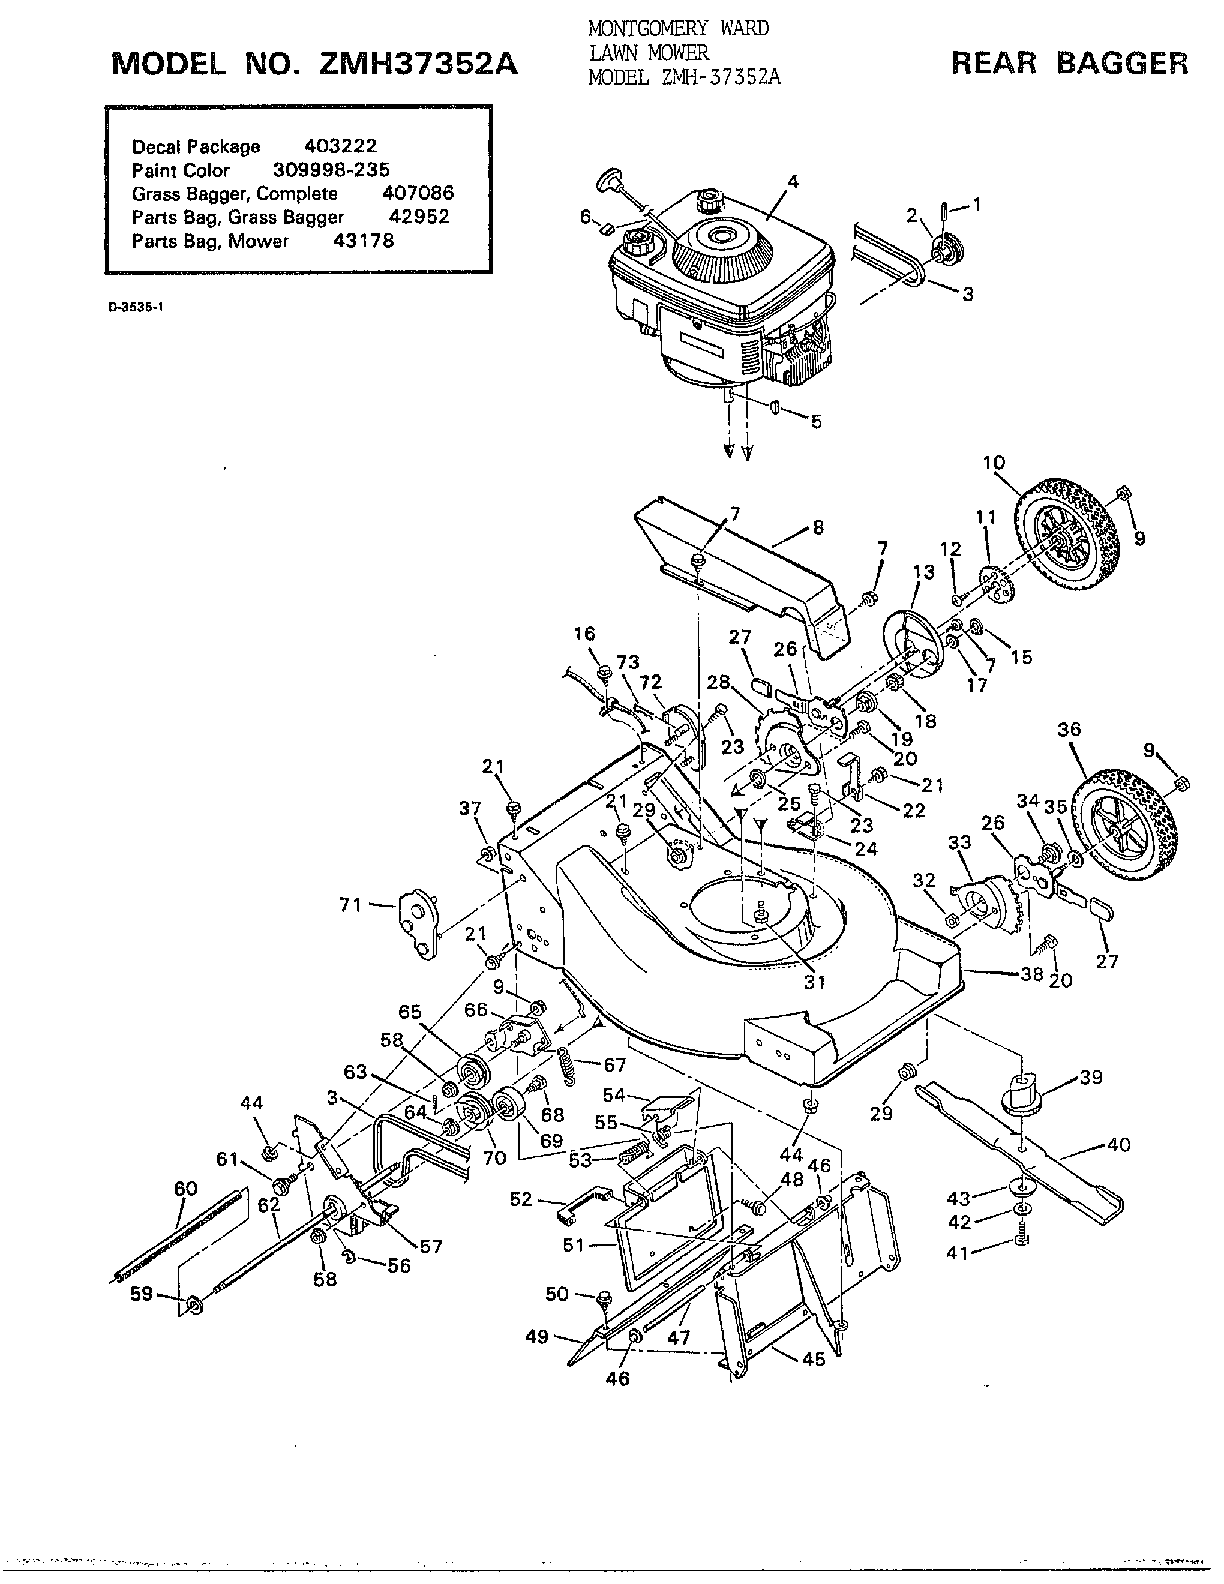 hight resolution of murray 37352a rear bagger diagram